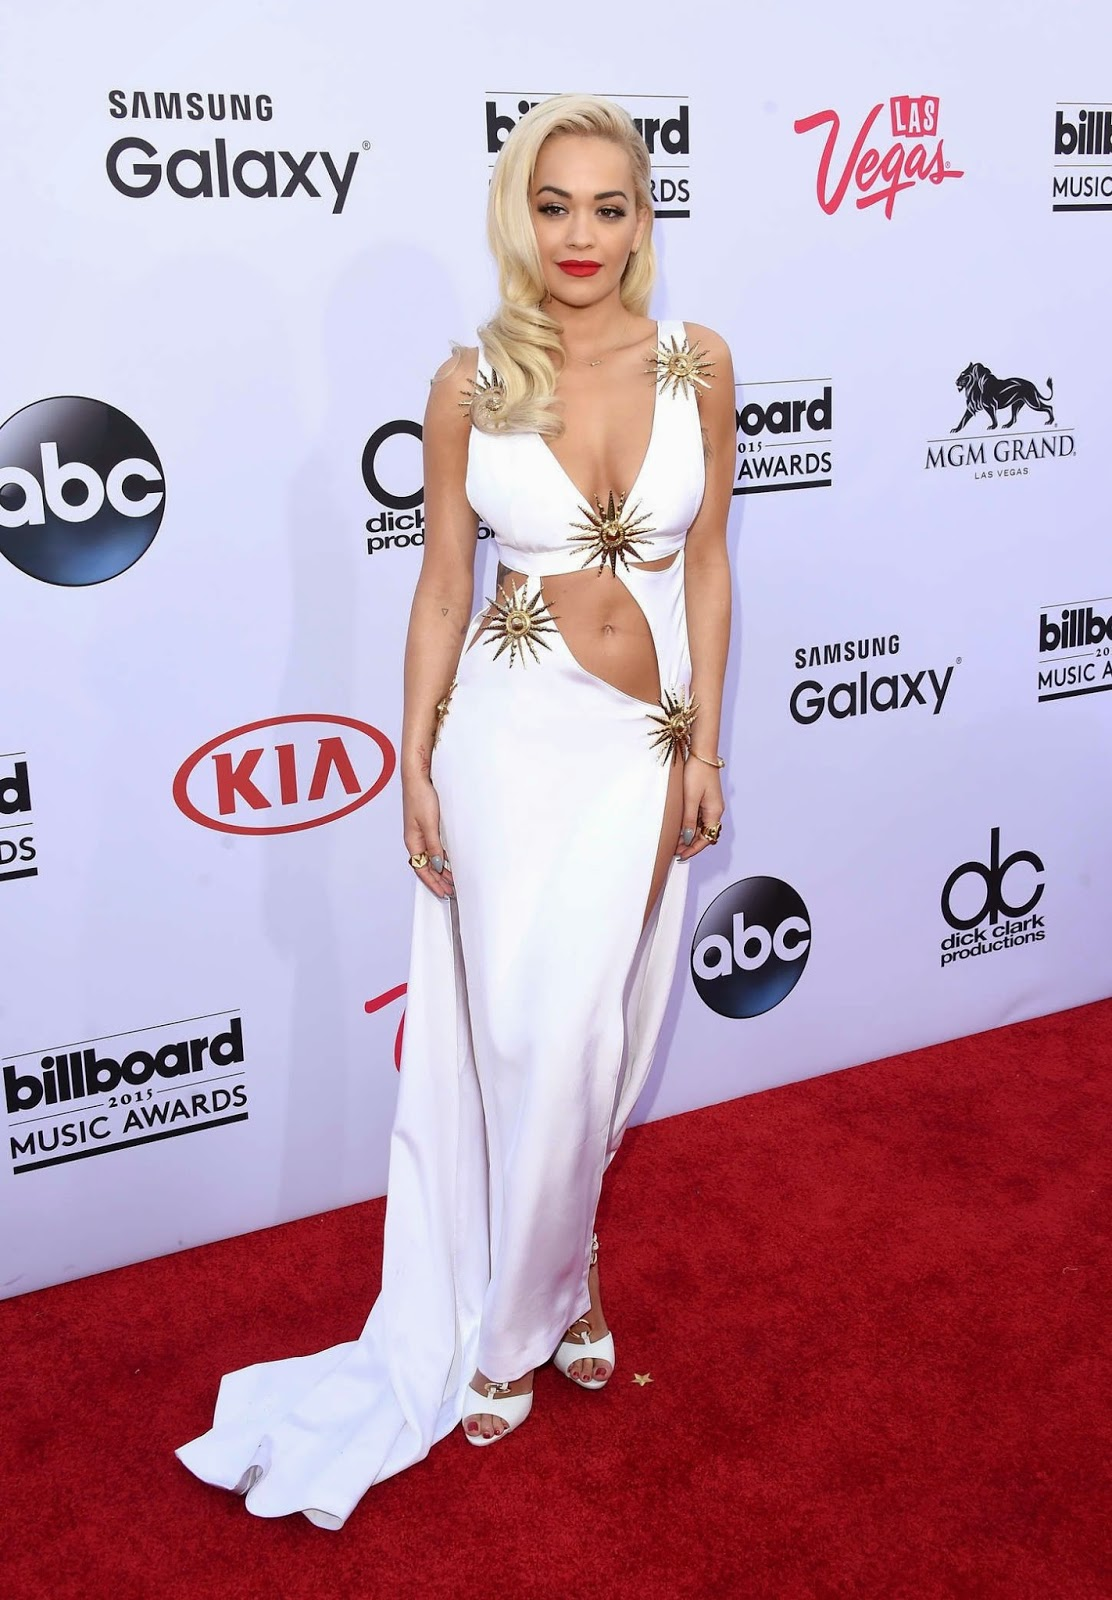 Singer, Songwriter, Actress @ Rita Ora at 2015 Billboard Music Awards in Las Vegas